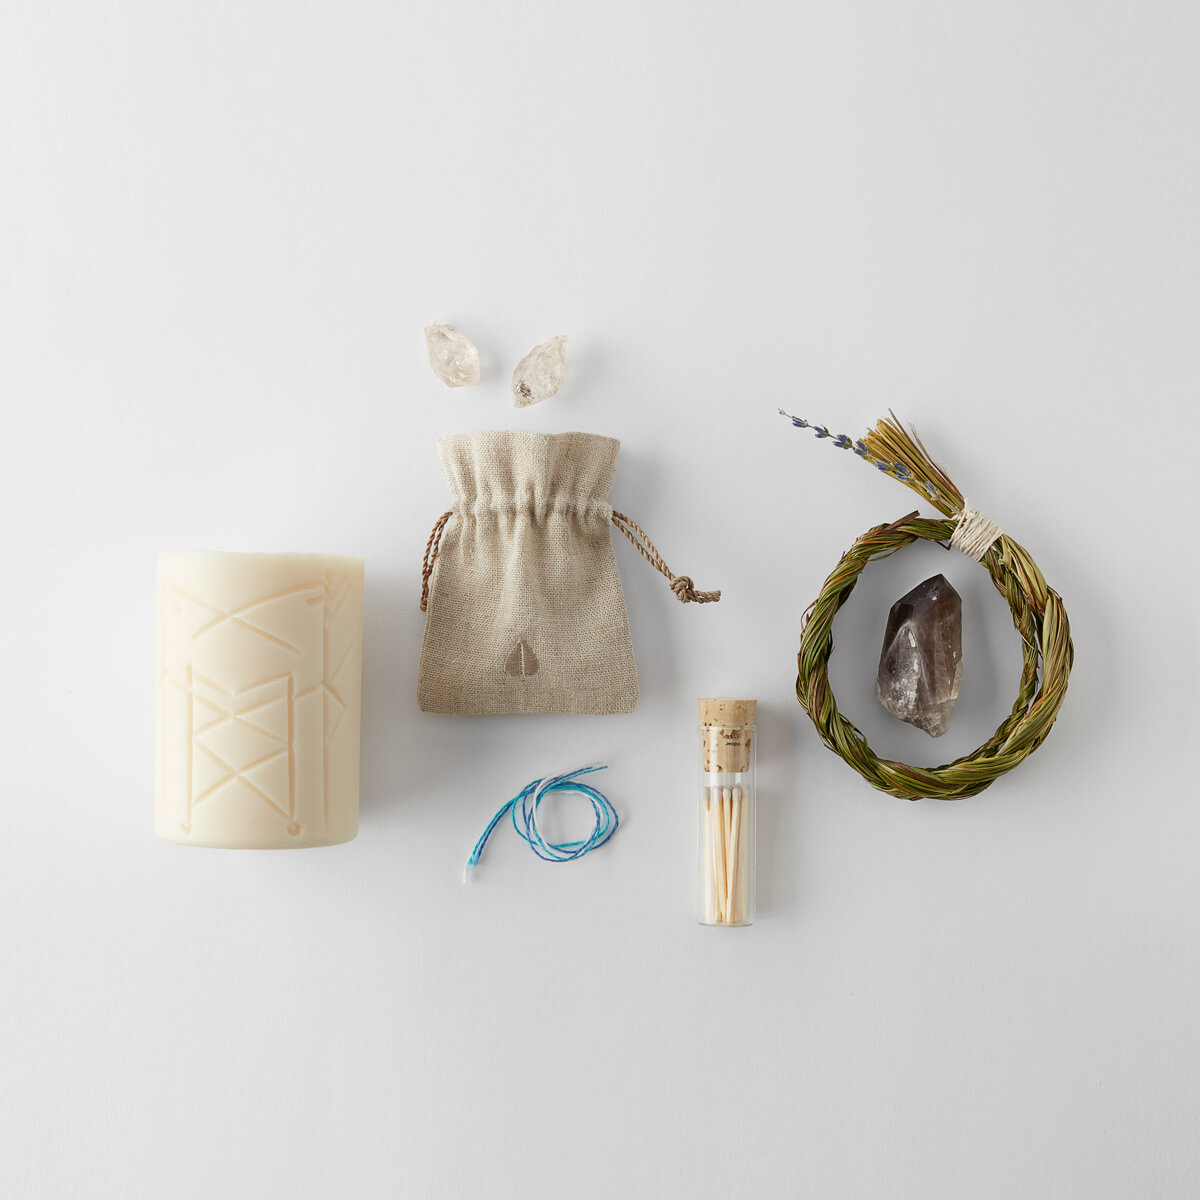 a bundle of sweetgrass, a Smells Like Spells Magic Nordic Rune candle, three strands of ethically sourced recycled linen yarn, a vial of matches, a smoky quartz point crystal and two Herkimer diamonds.